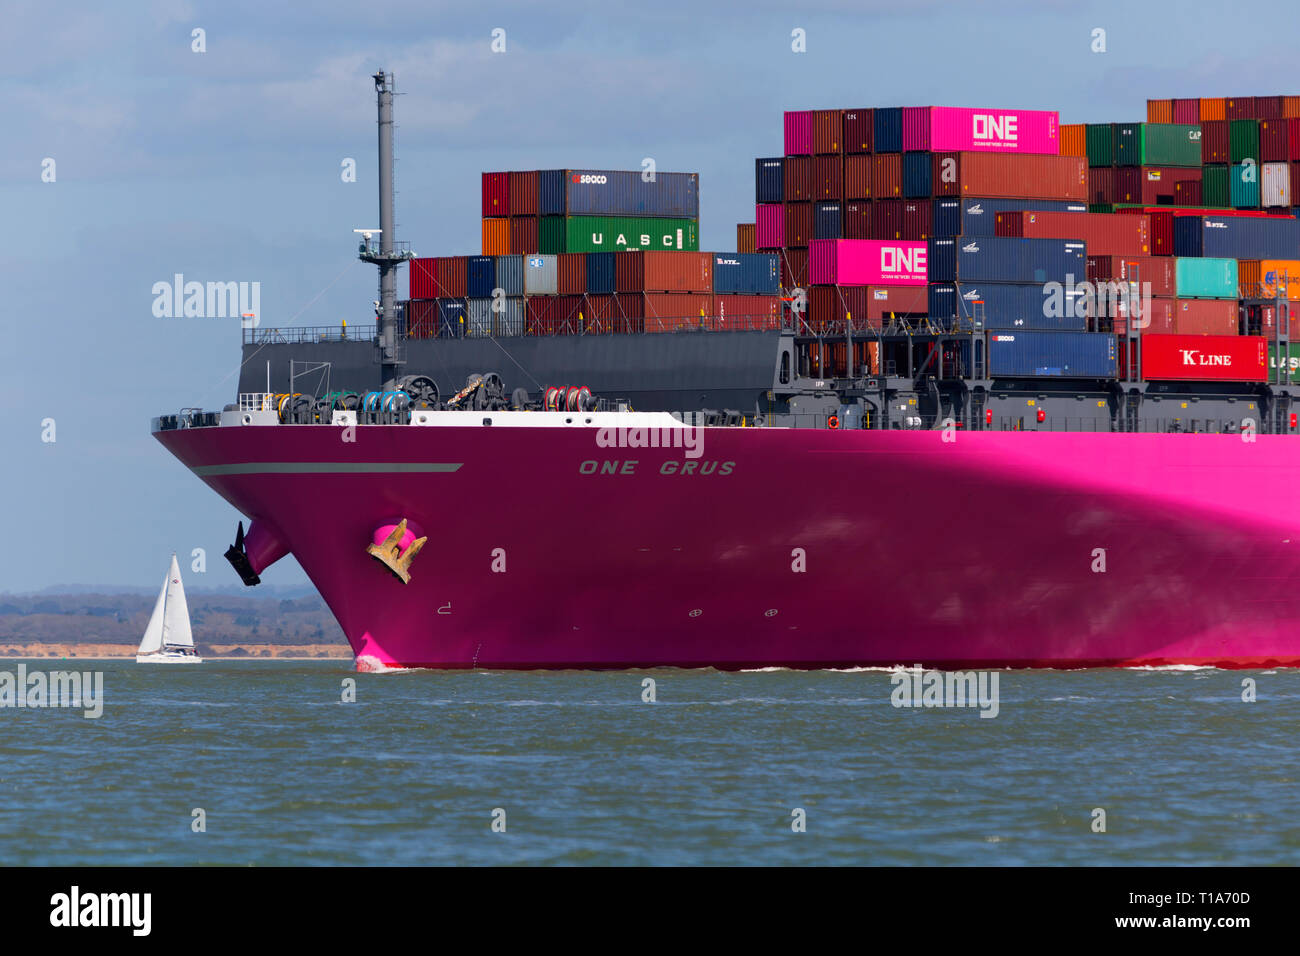 Tug, Phenix,Container,Ship,Grus,ONE,company,entering,Southampton,Water,Terminal,The Solent,off,Cowes,Isle of Wight, England, UK, - Stock Image